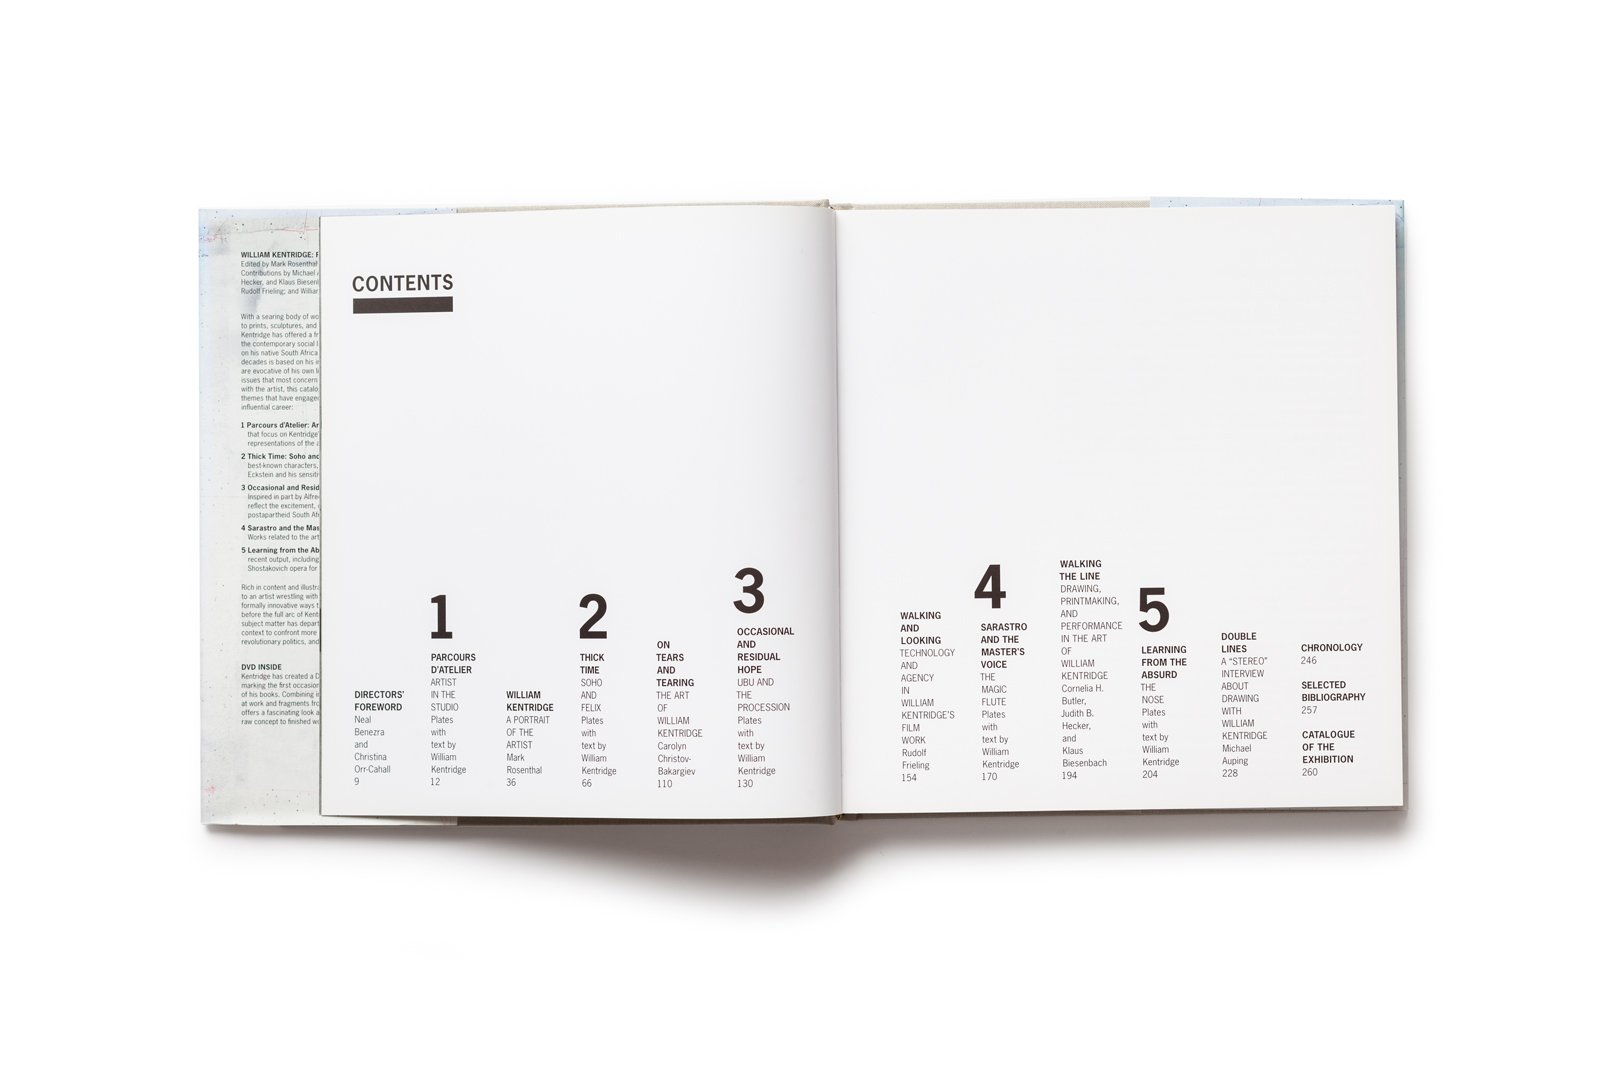 William Kentridge publication table of contents